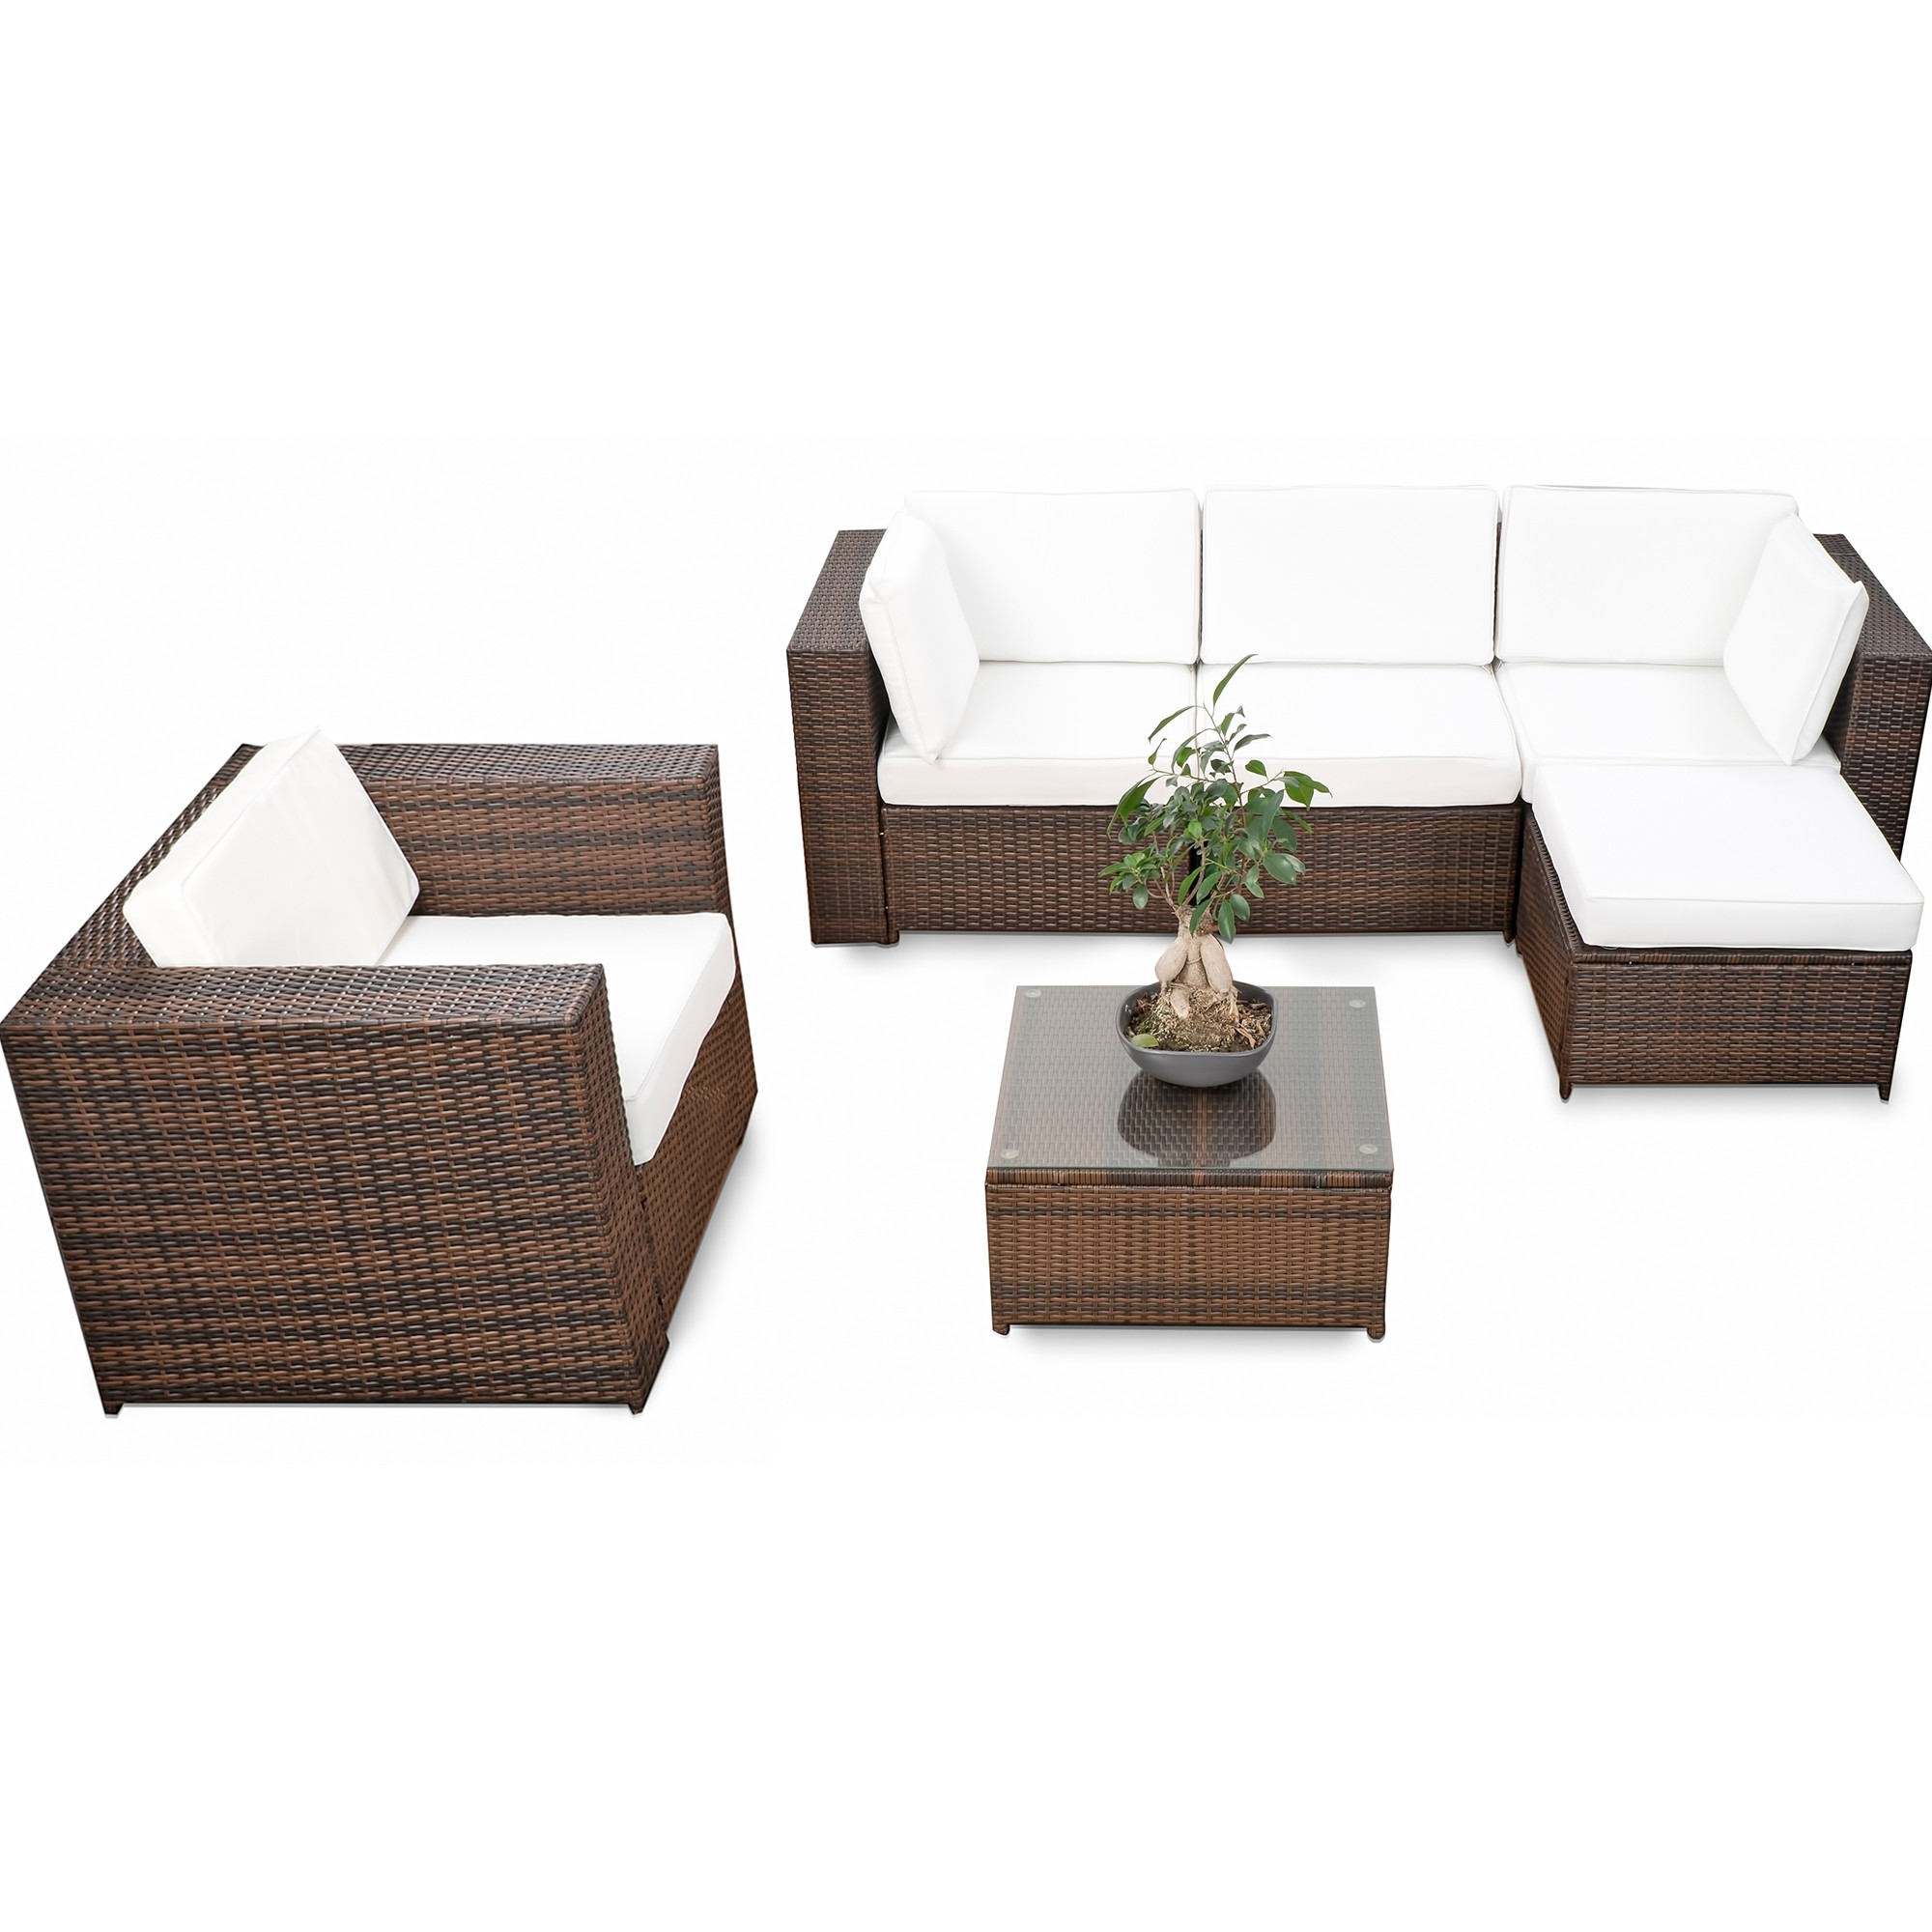 lounge gartenmoebel polyrattan g nstig polyrattan. Black Bedroom Furniture Sets. Home Design Ideas